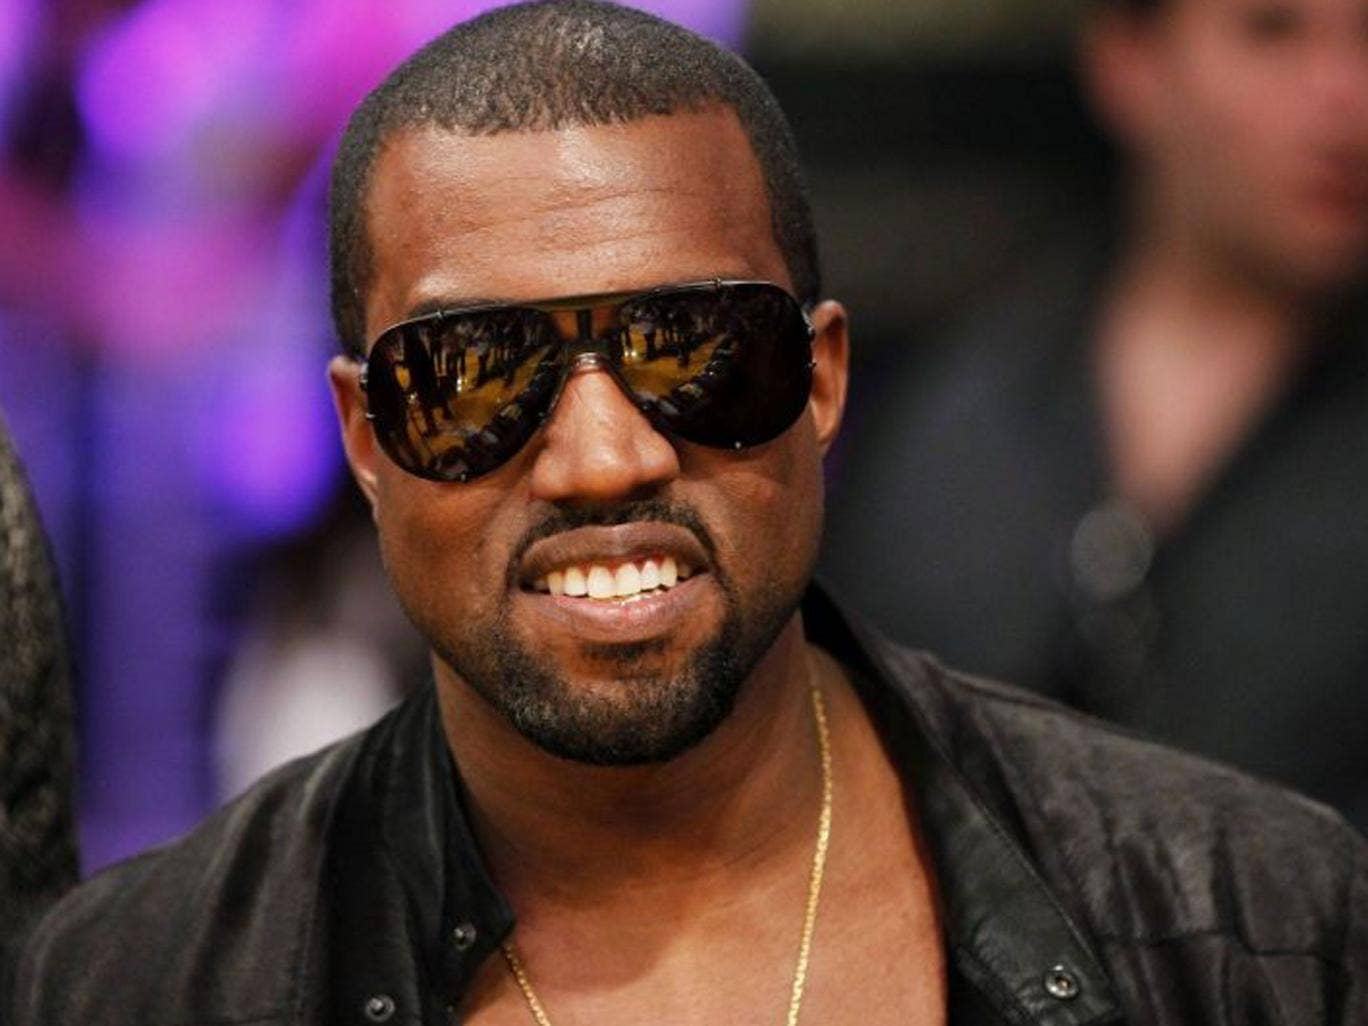 Kanye West is either being deliberately provocative, or unbelievably stupid